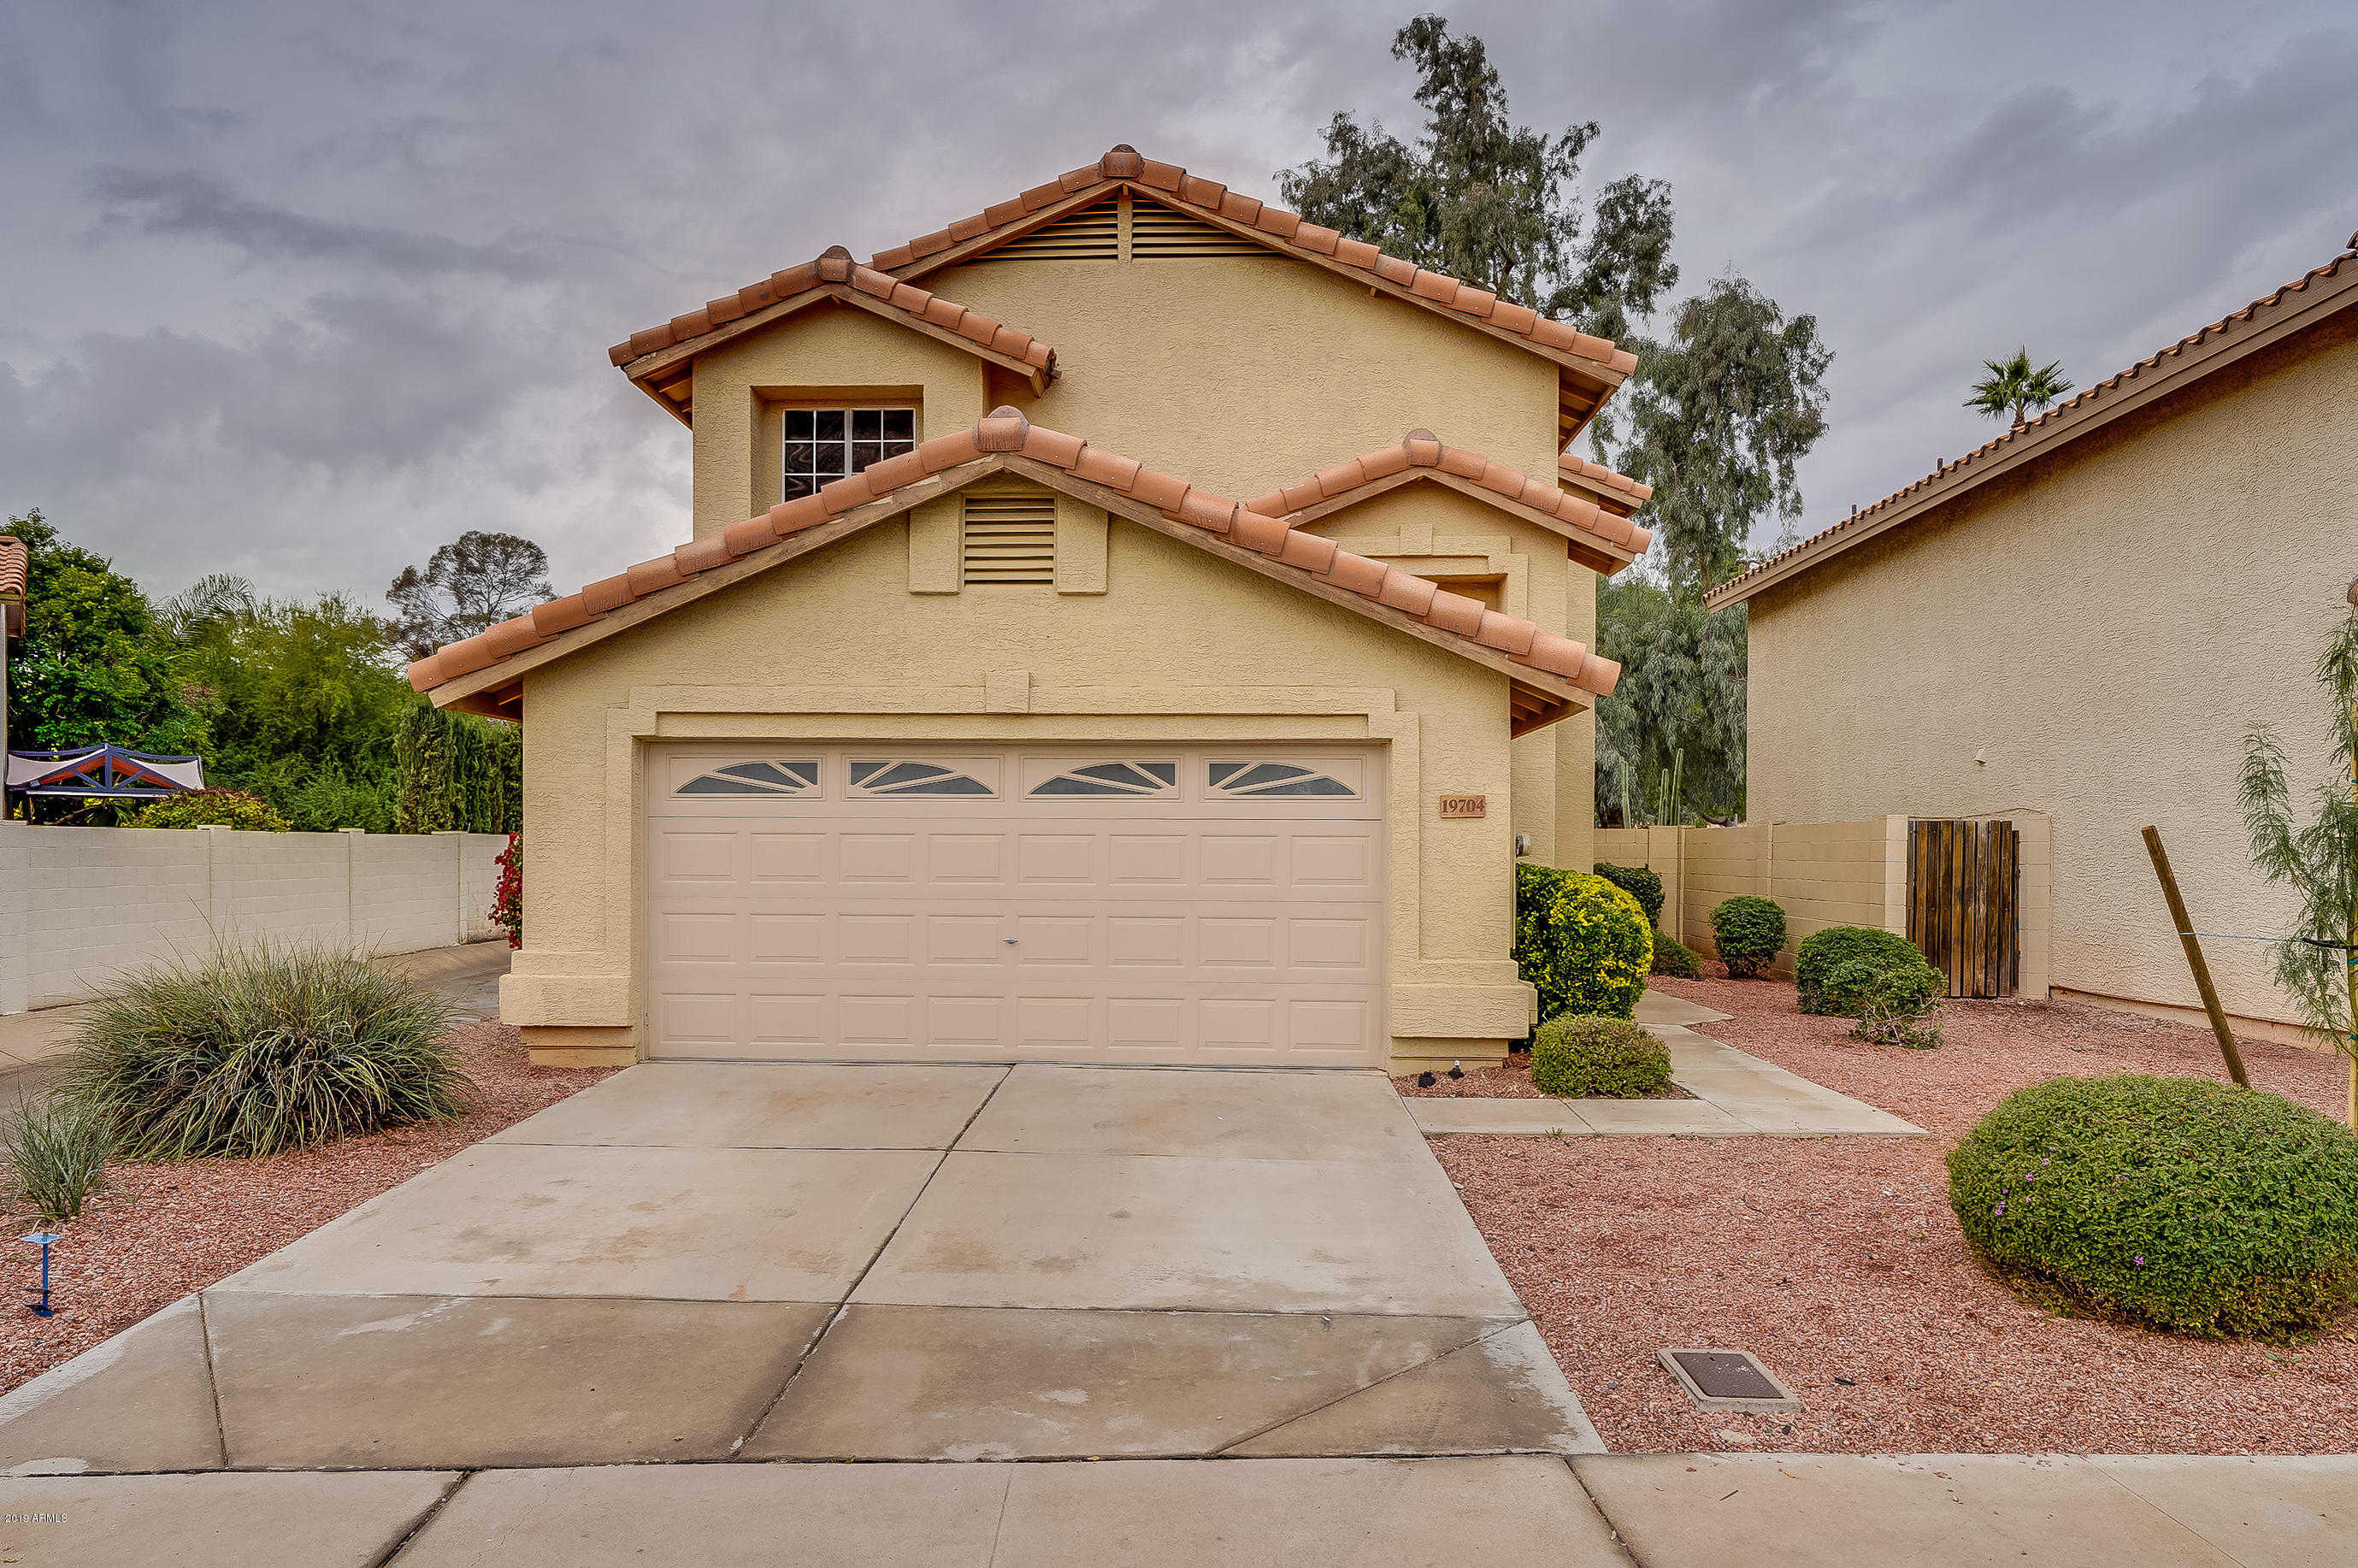 $319,000 - 4Br/3Ba - Home for Sale in Arrowhead On The Green Lot 1-325 Tr A-c, Glendale